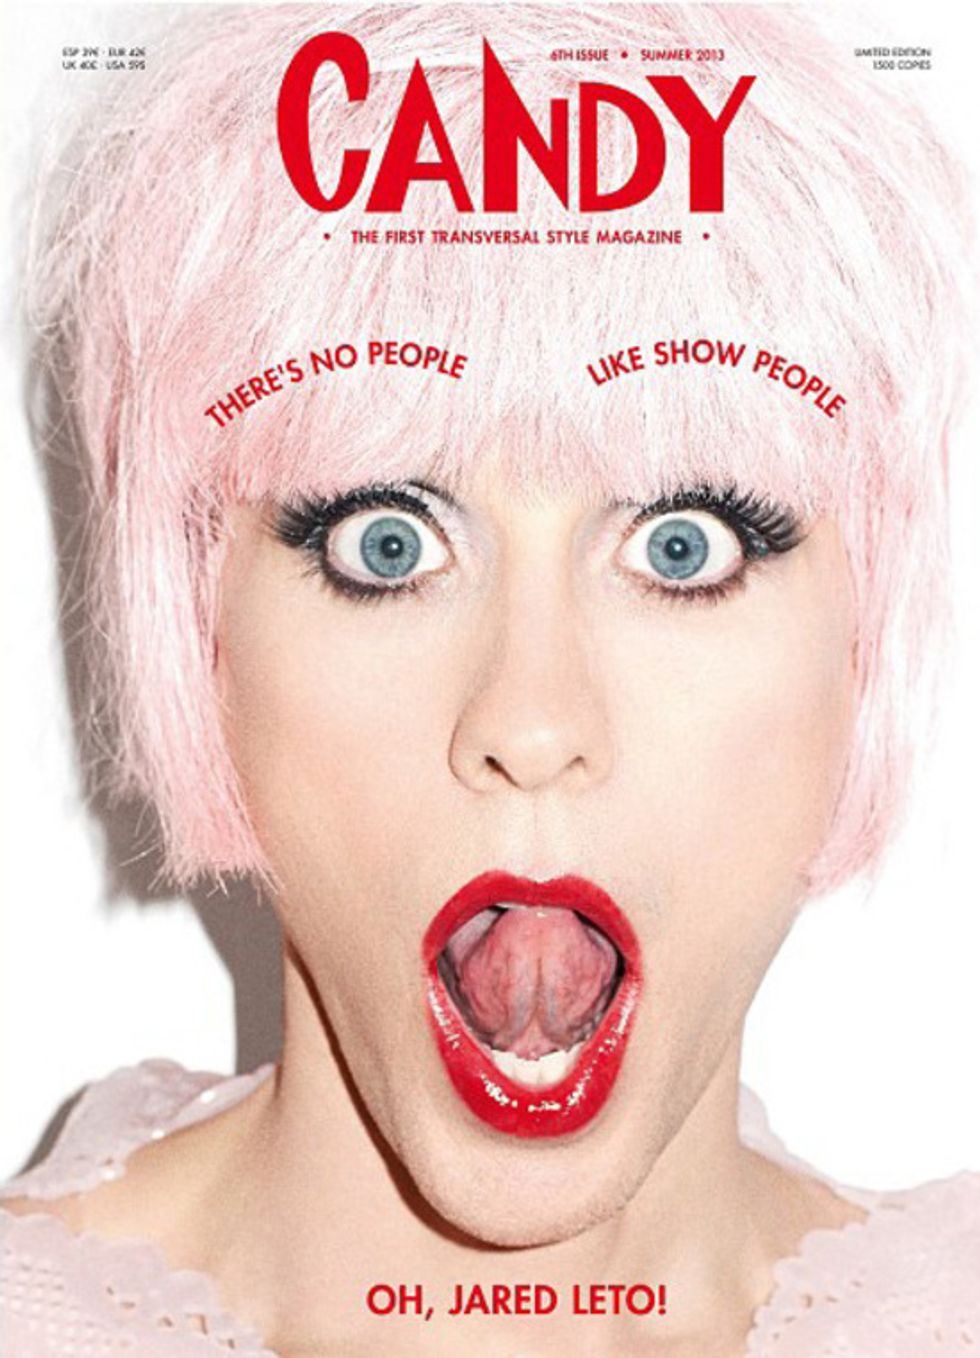 Jared Leto Wears a Pink Wig and Lipstick for Candy Magazine